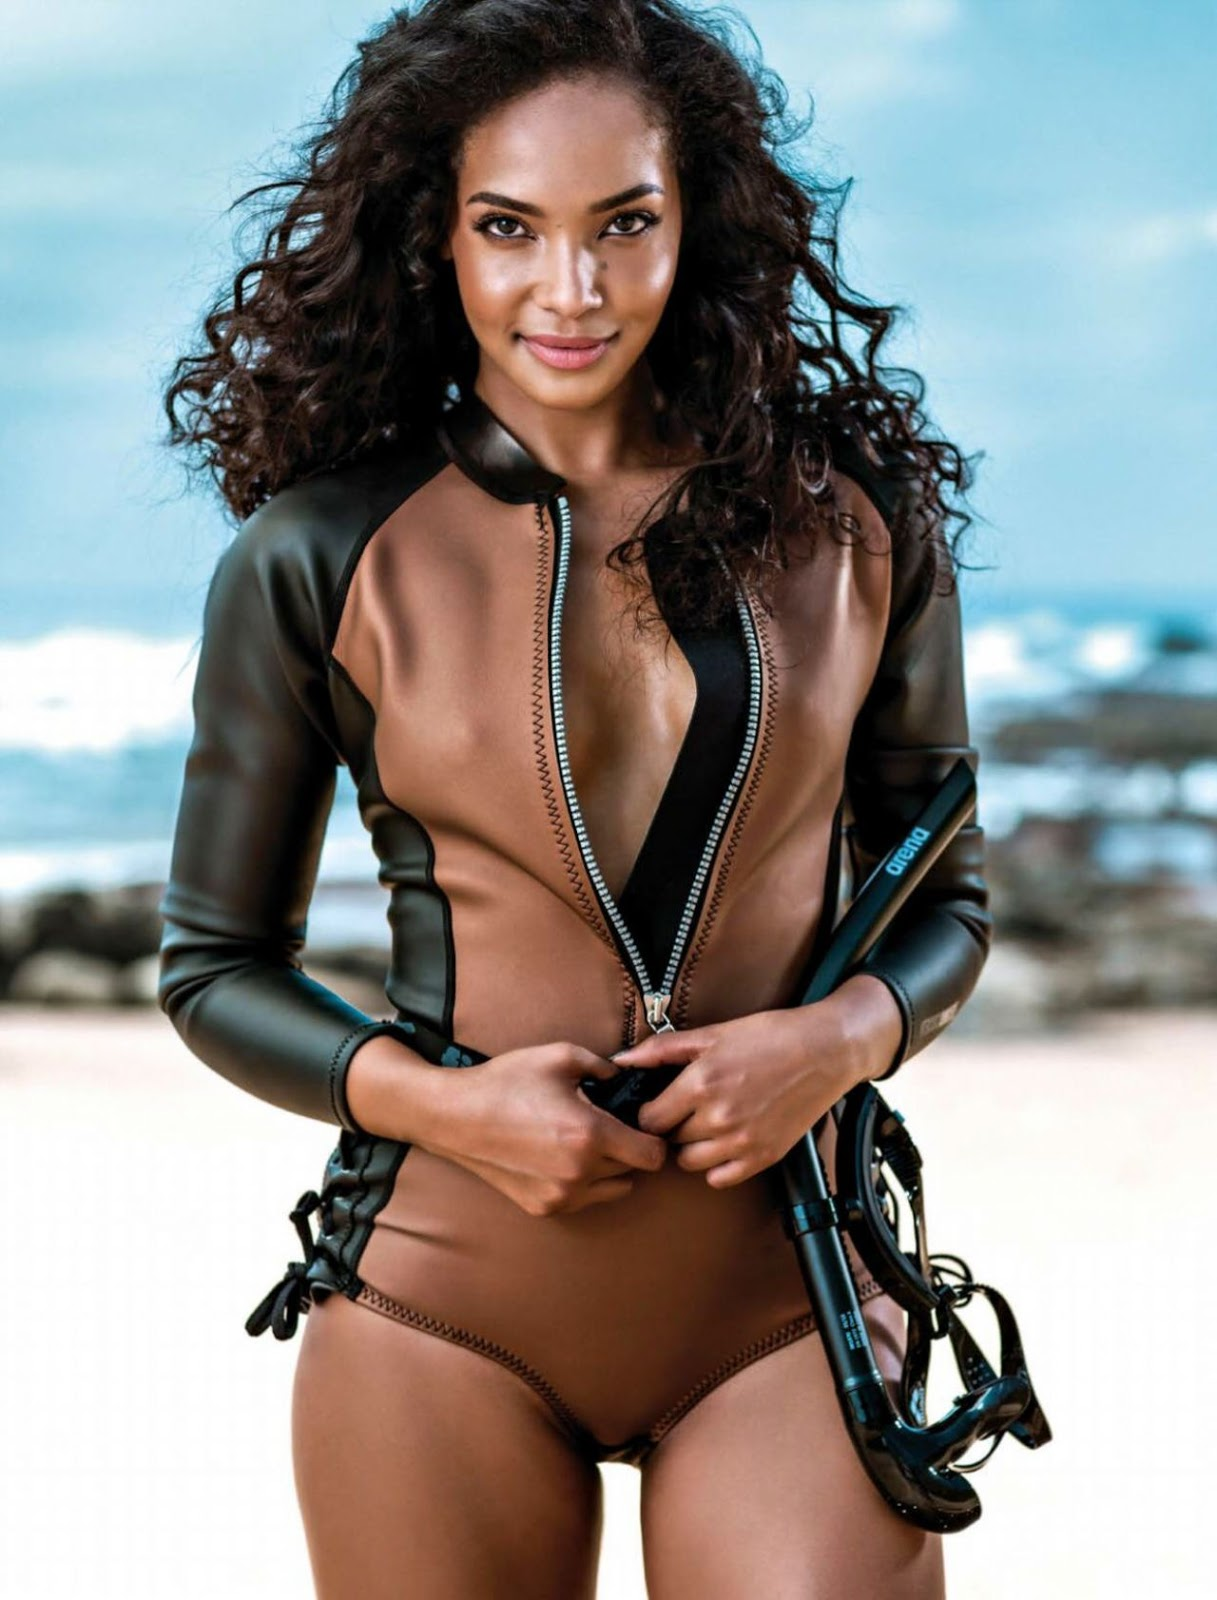 Liesl Laurie - Women's Health South Africa March 2020 Cover and Photos